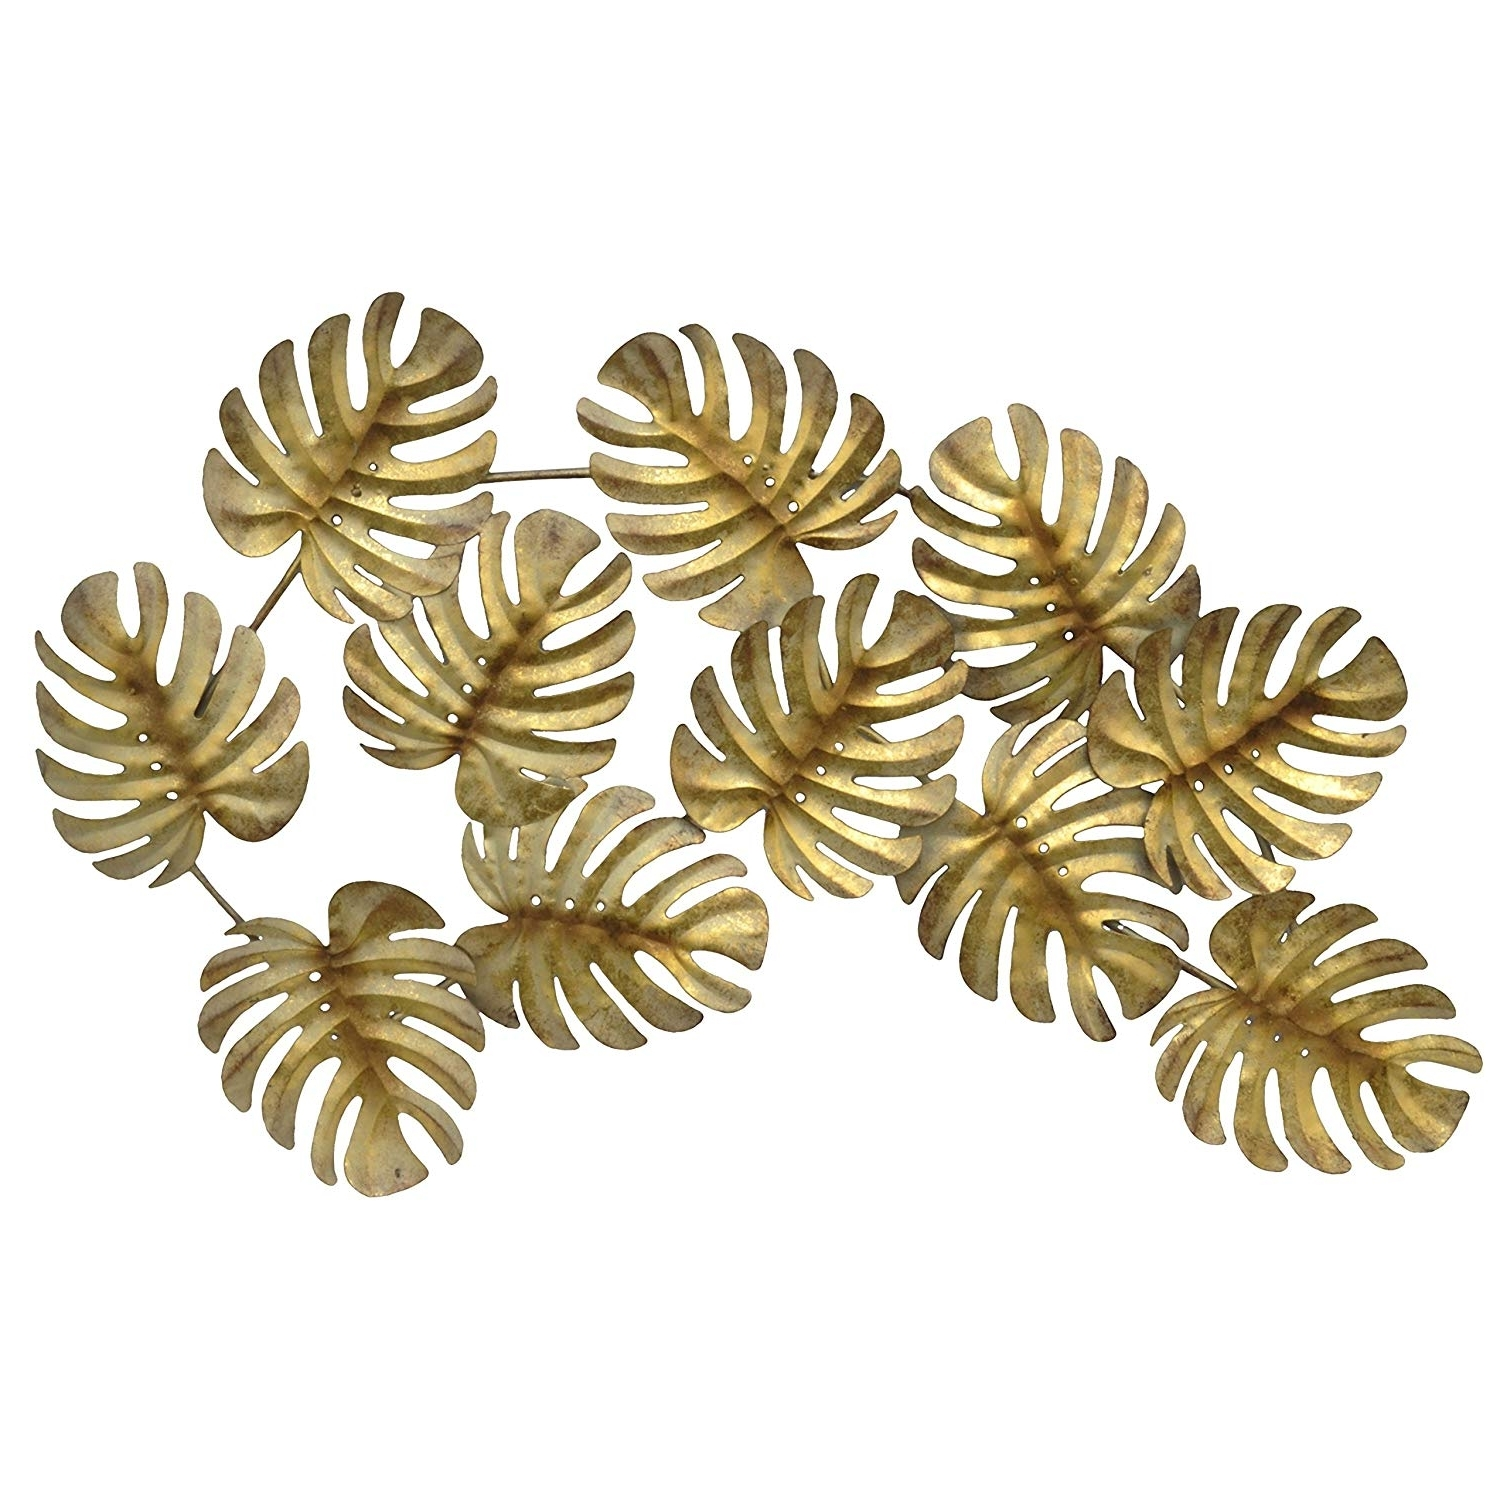 Well Known Gold Metal Wall Art Inside Amazon: Three Hands 10116 Gold Metal Tropical Leaves Wall Decor (View 13 of 15)